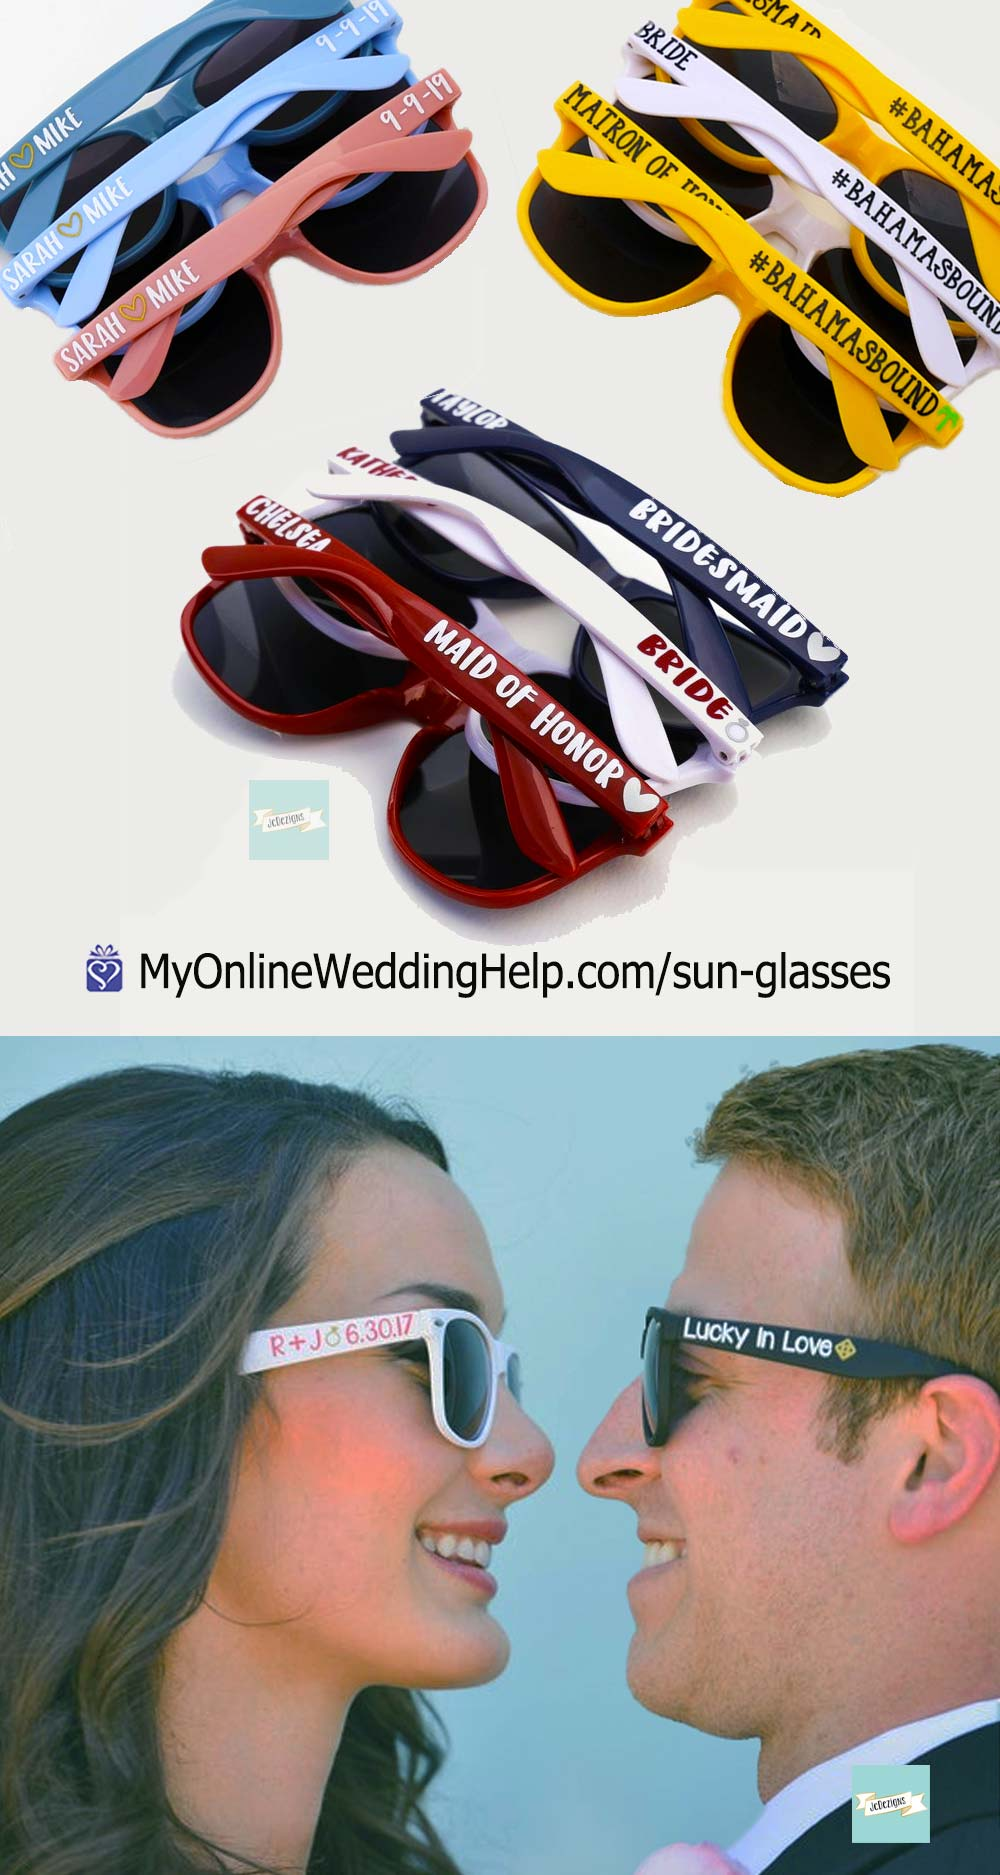 Wedding Sunglasses Favors or Gifts